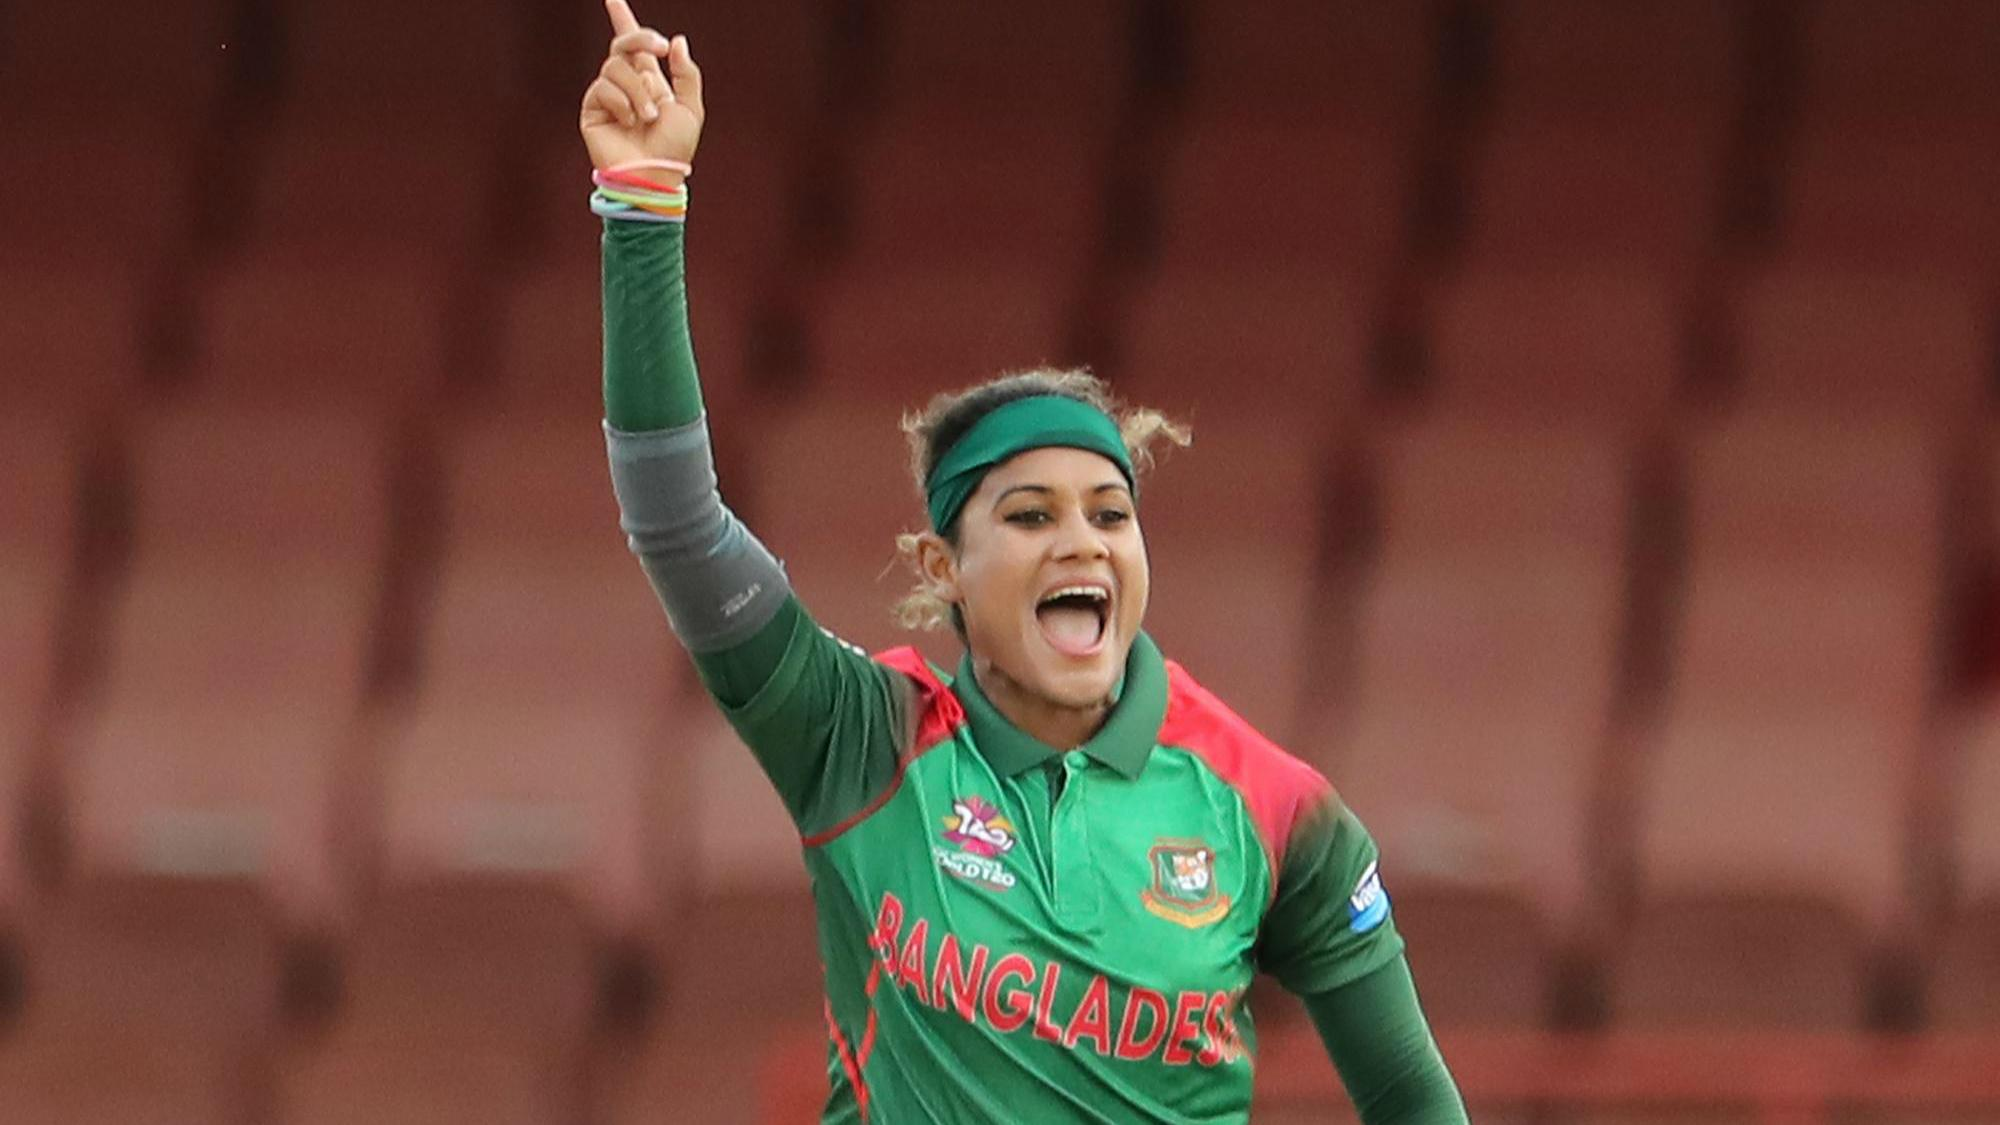 Jahanara Alam of Bangladesh celebrates the wicket of Ireland's Clare Shillington during the ICC Women's World T20 warm up match between Bangladesh and Ireland on November 4, 2018 at the Guyana National Stadium in Providence, Guyana.